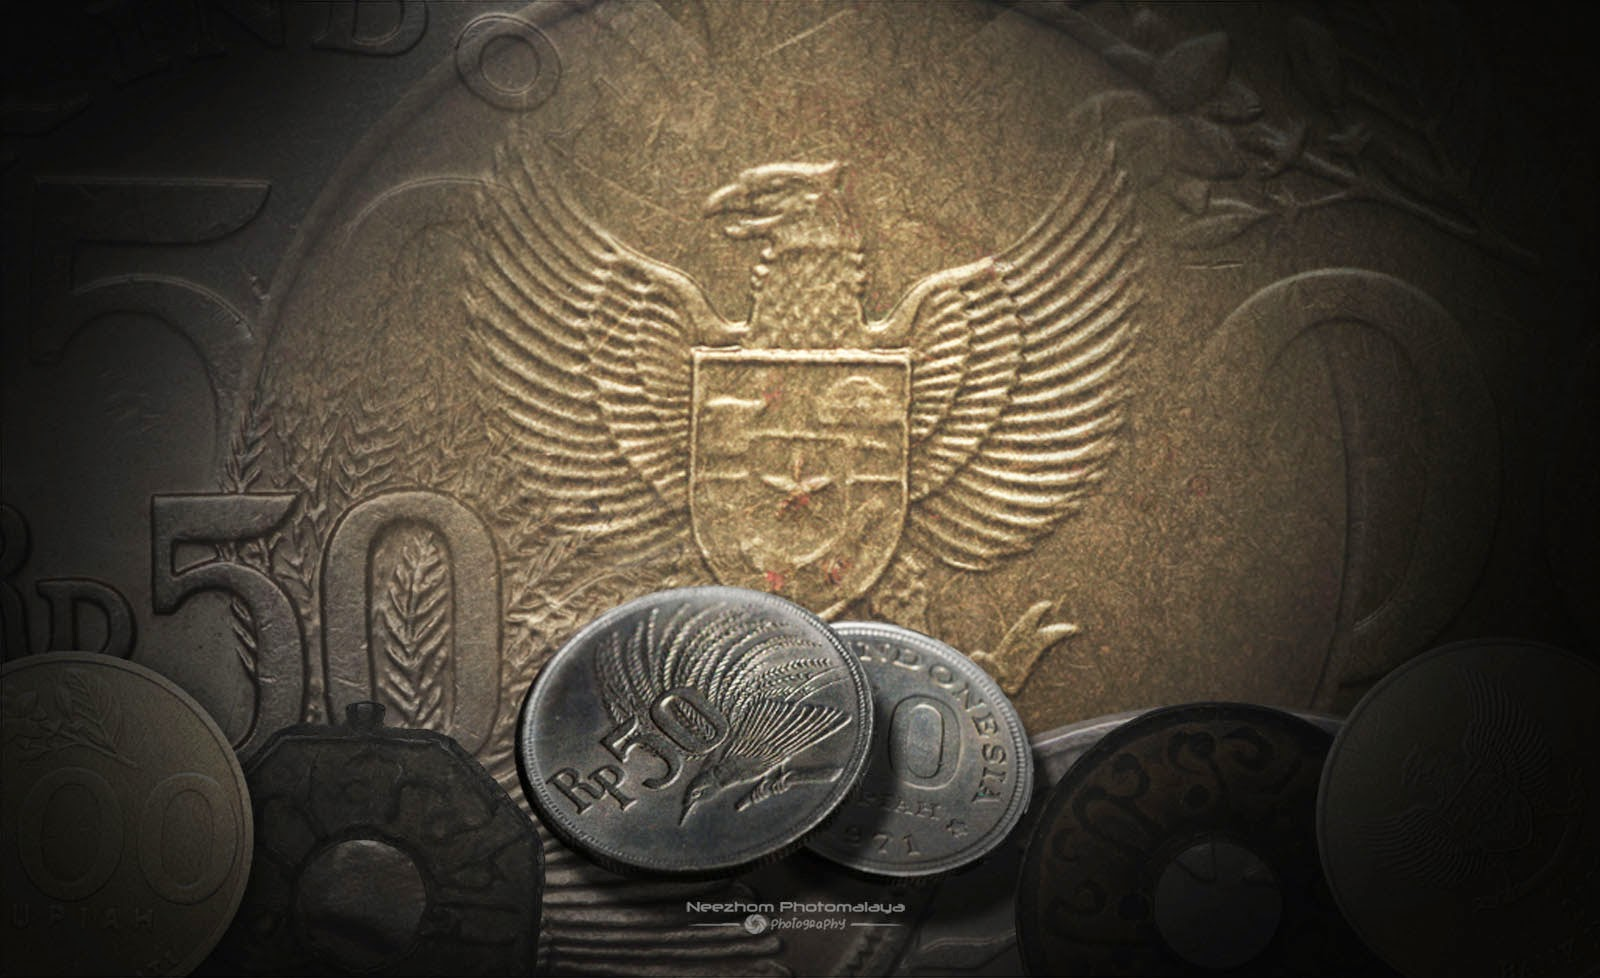 Indonesia coins collection cover